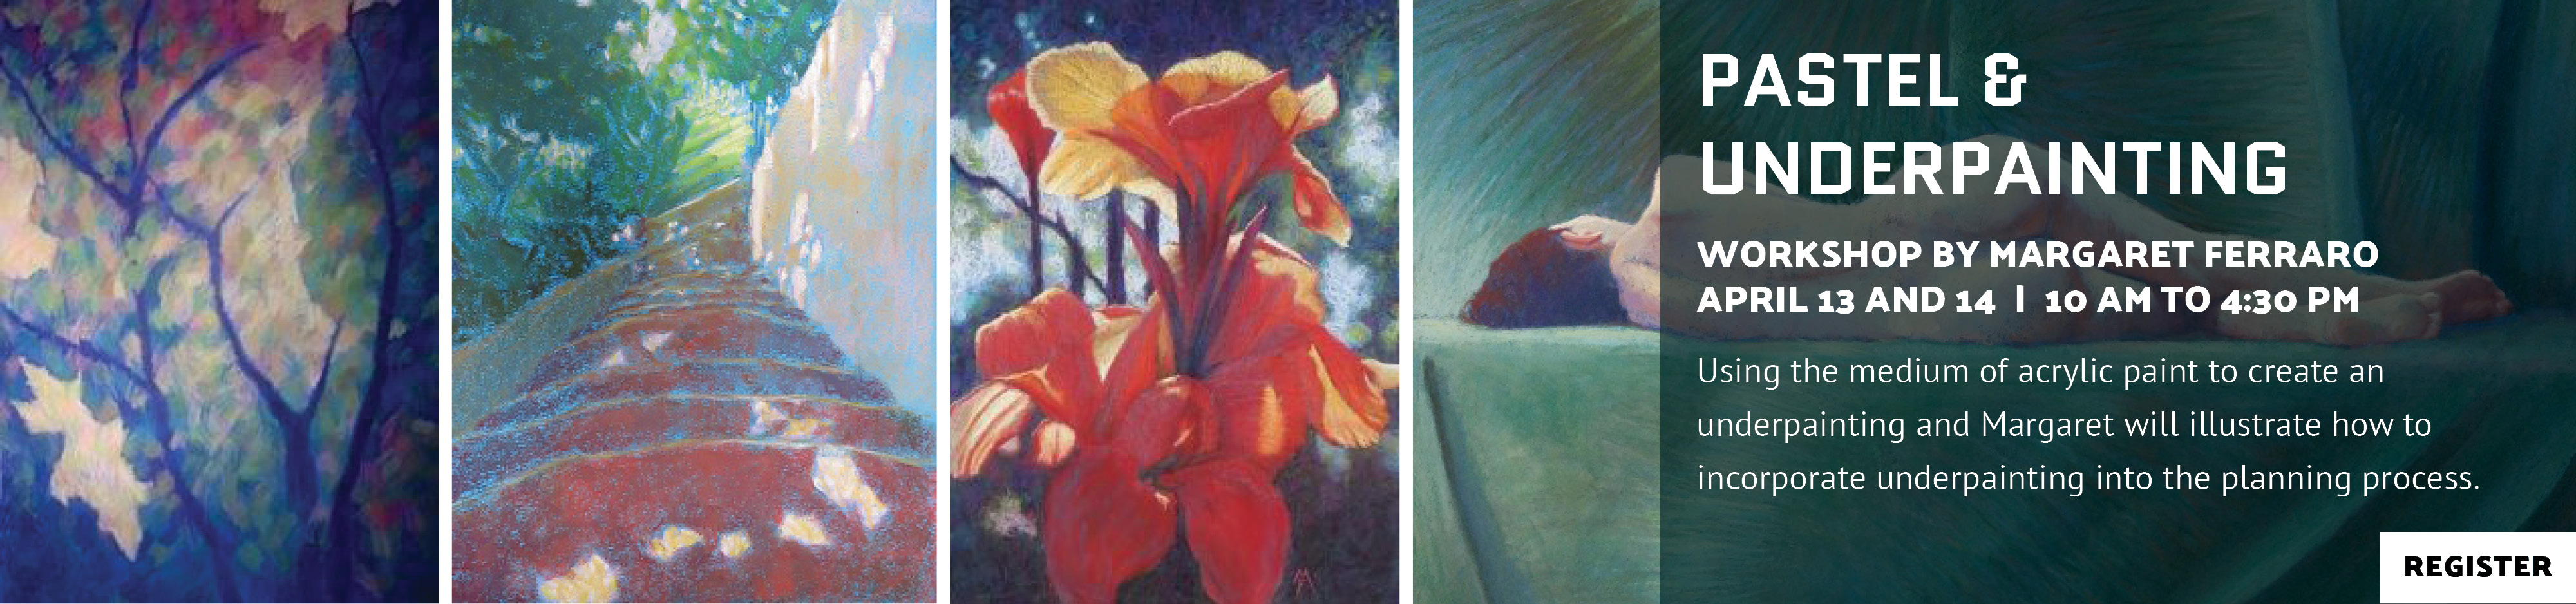 Pastel and Underpainting Workshop with Margaret Ferraro